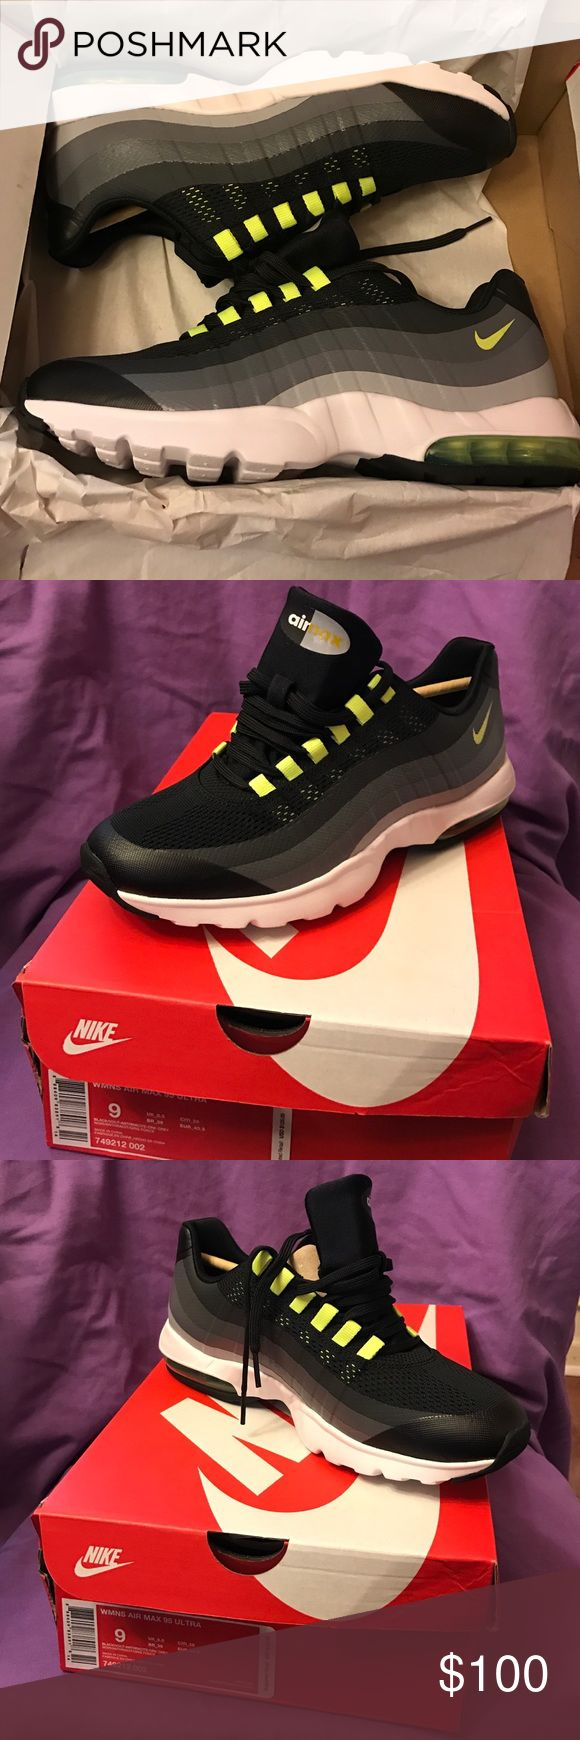 Brand new Wmns Air Max 95 New never worn women's Nike Air Max 95. Size 9. Colors black, gray and volt Nike Shoes Athletic Shoes